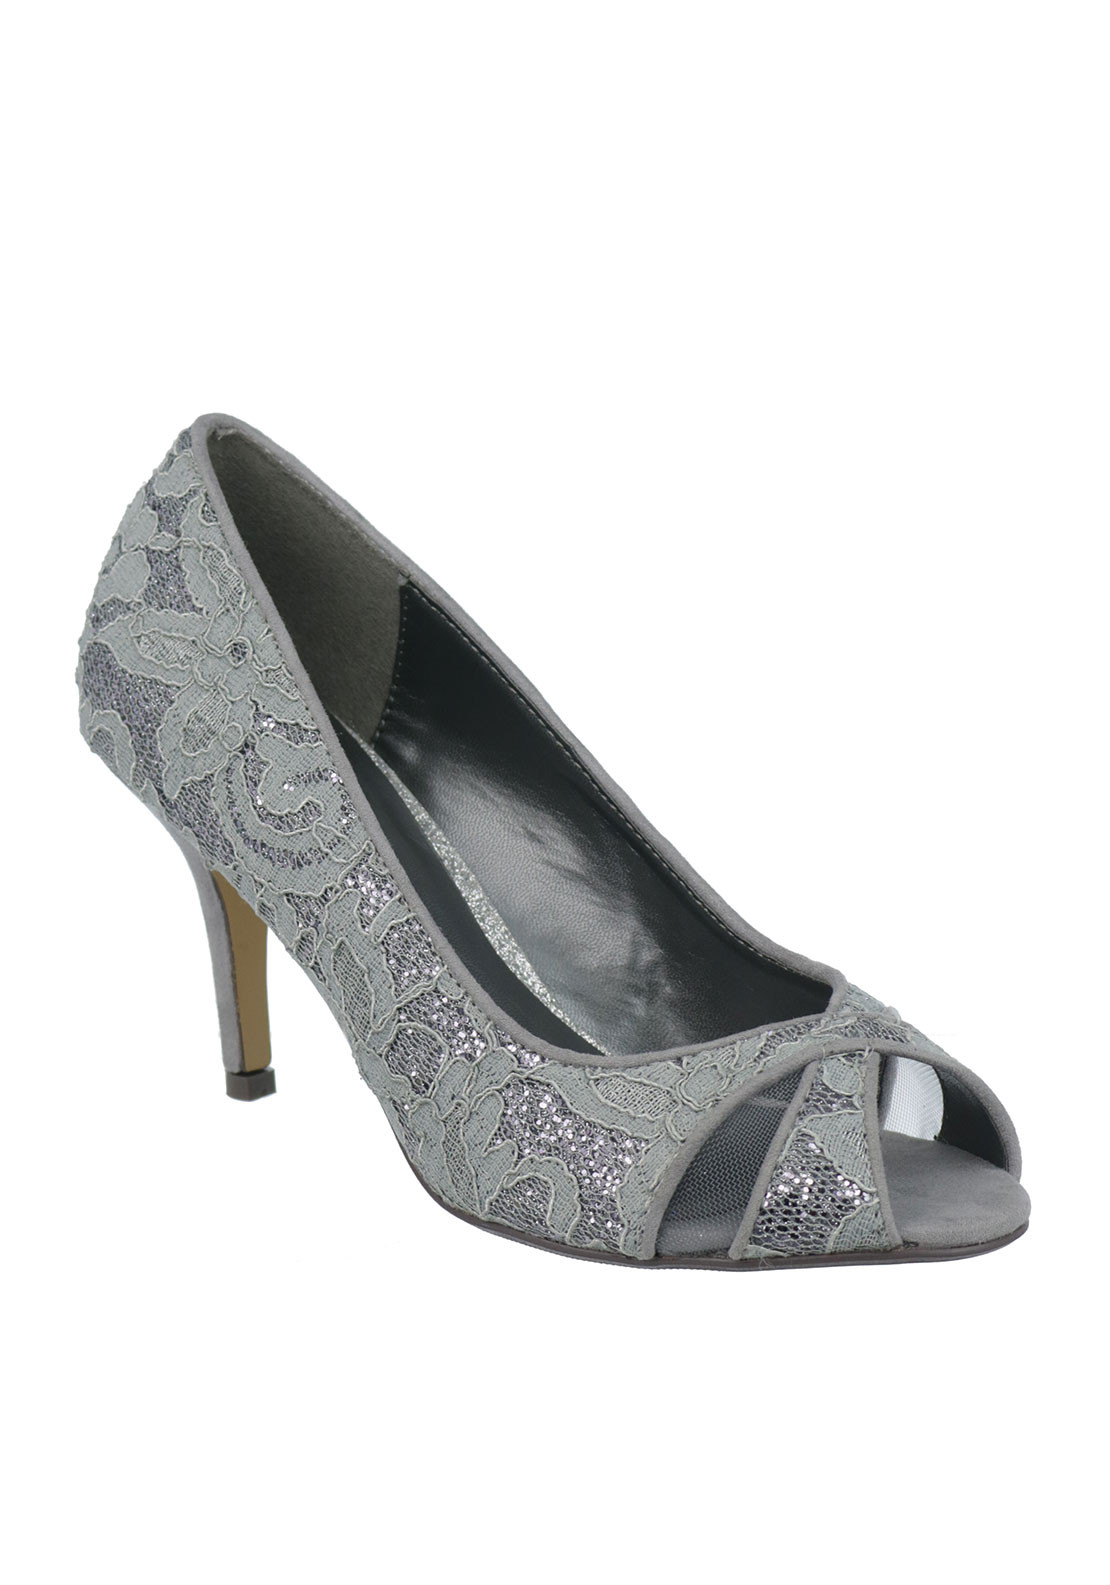 Glamour Lace Peep Toe Heeled Shoes, Silver